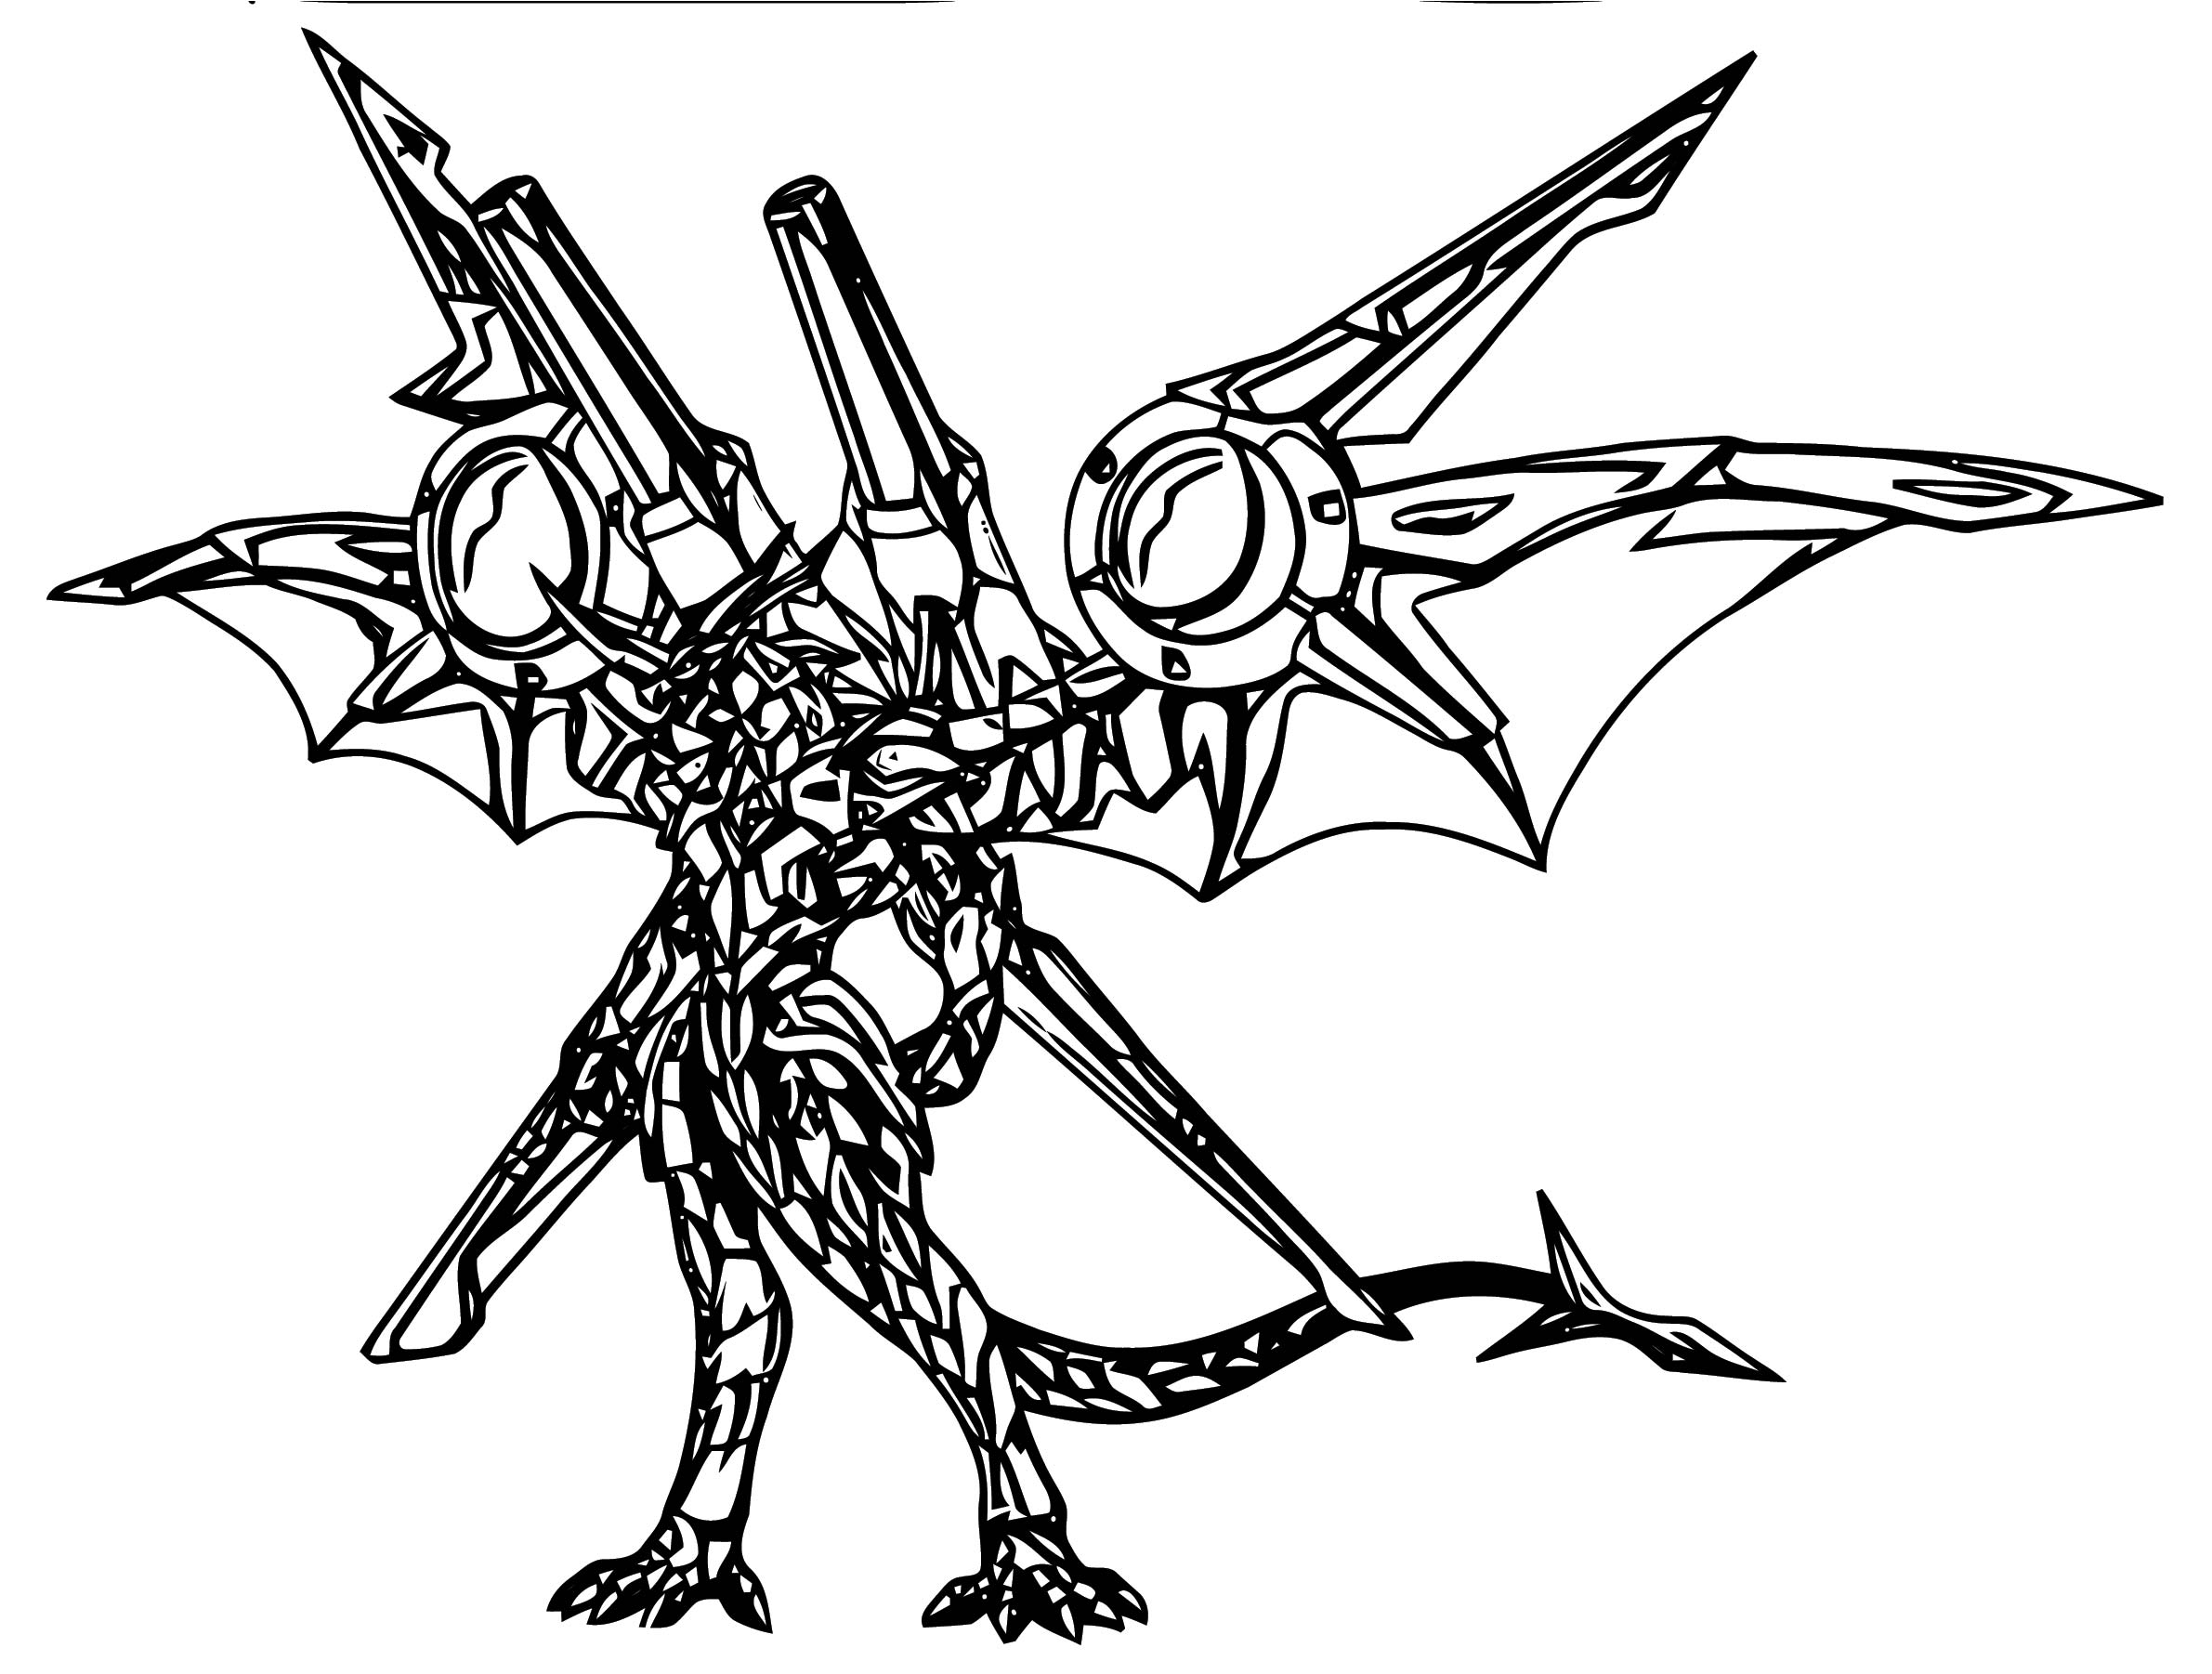 Helix Drago With Jetkor Coloring Page